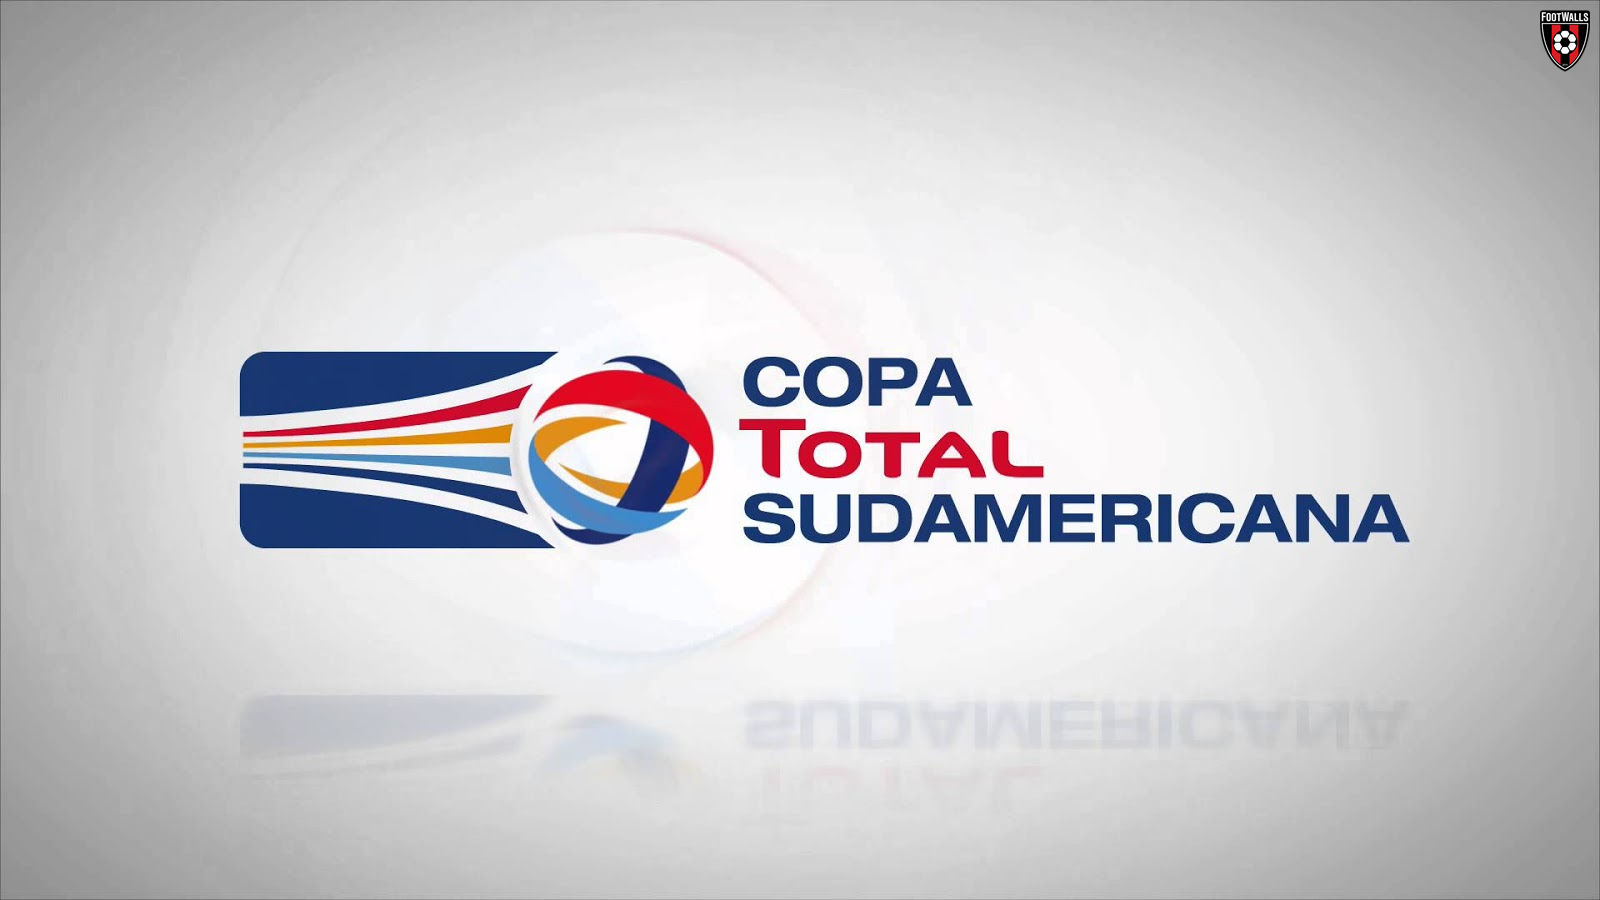 Copa Sudamericana Wallpaper